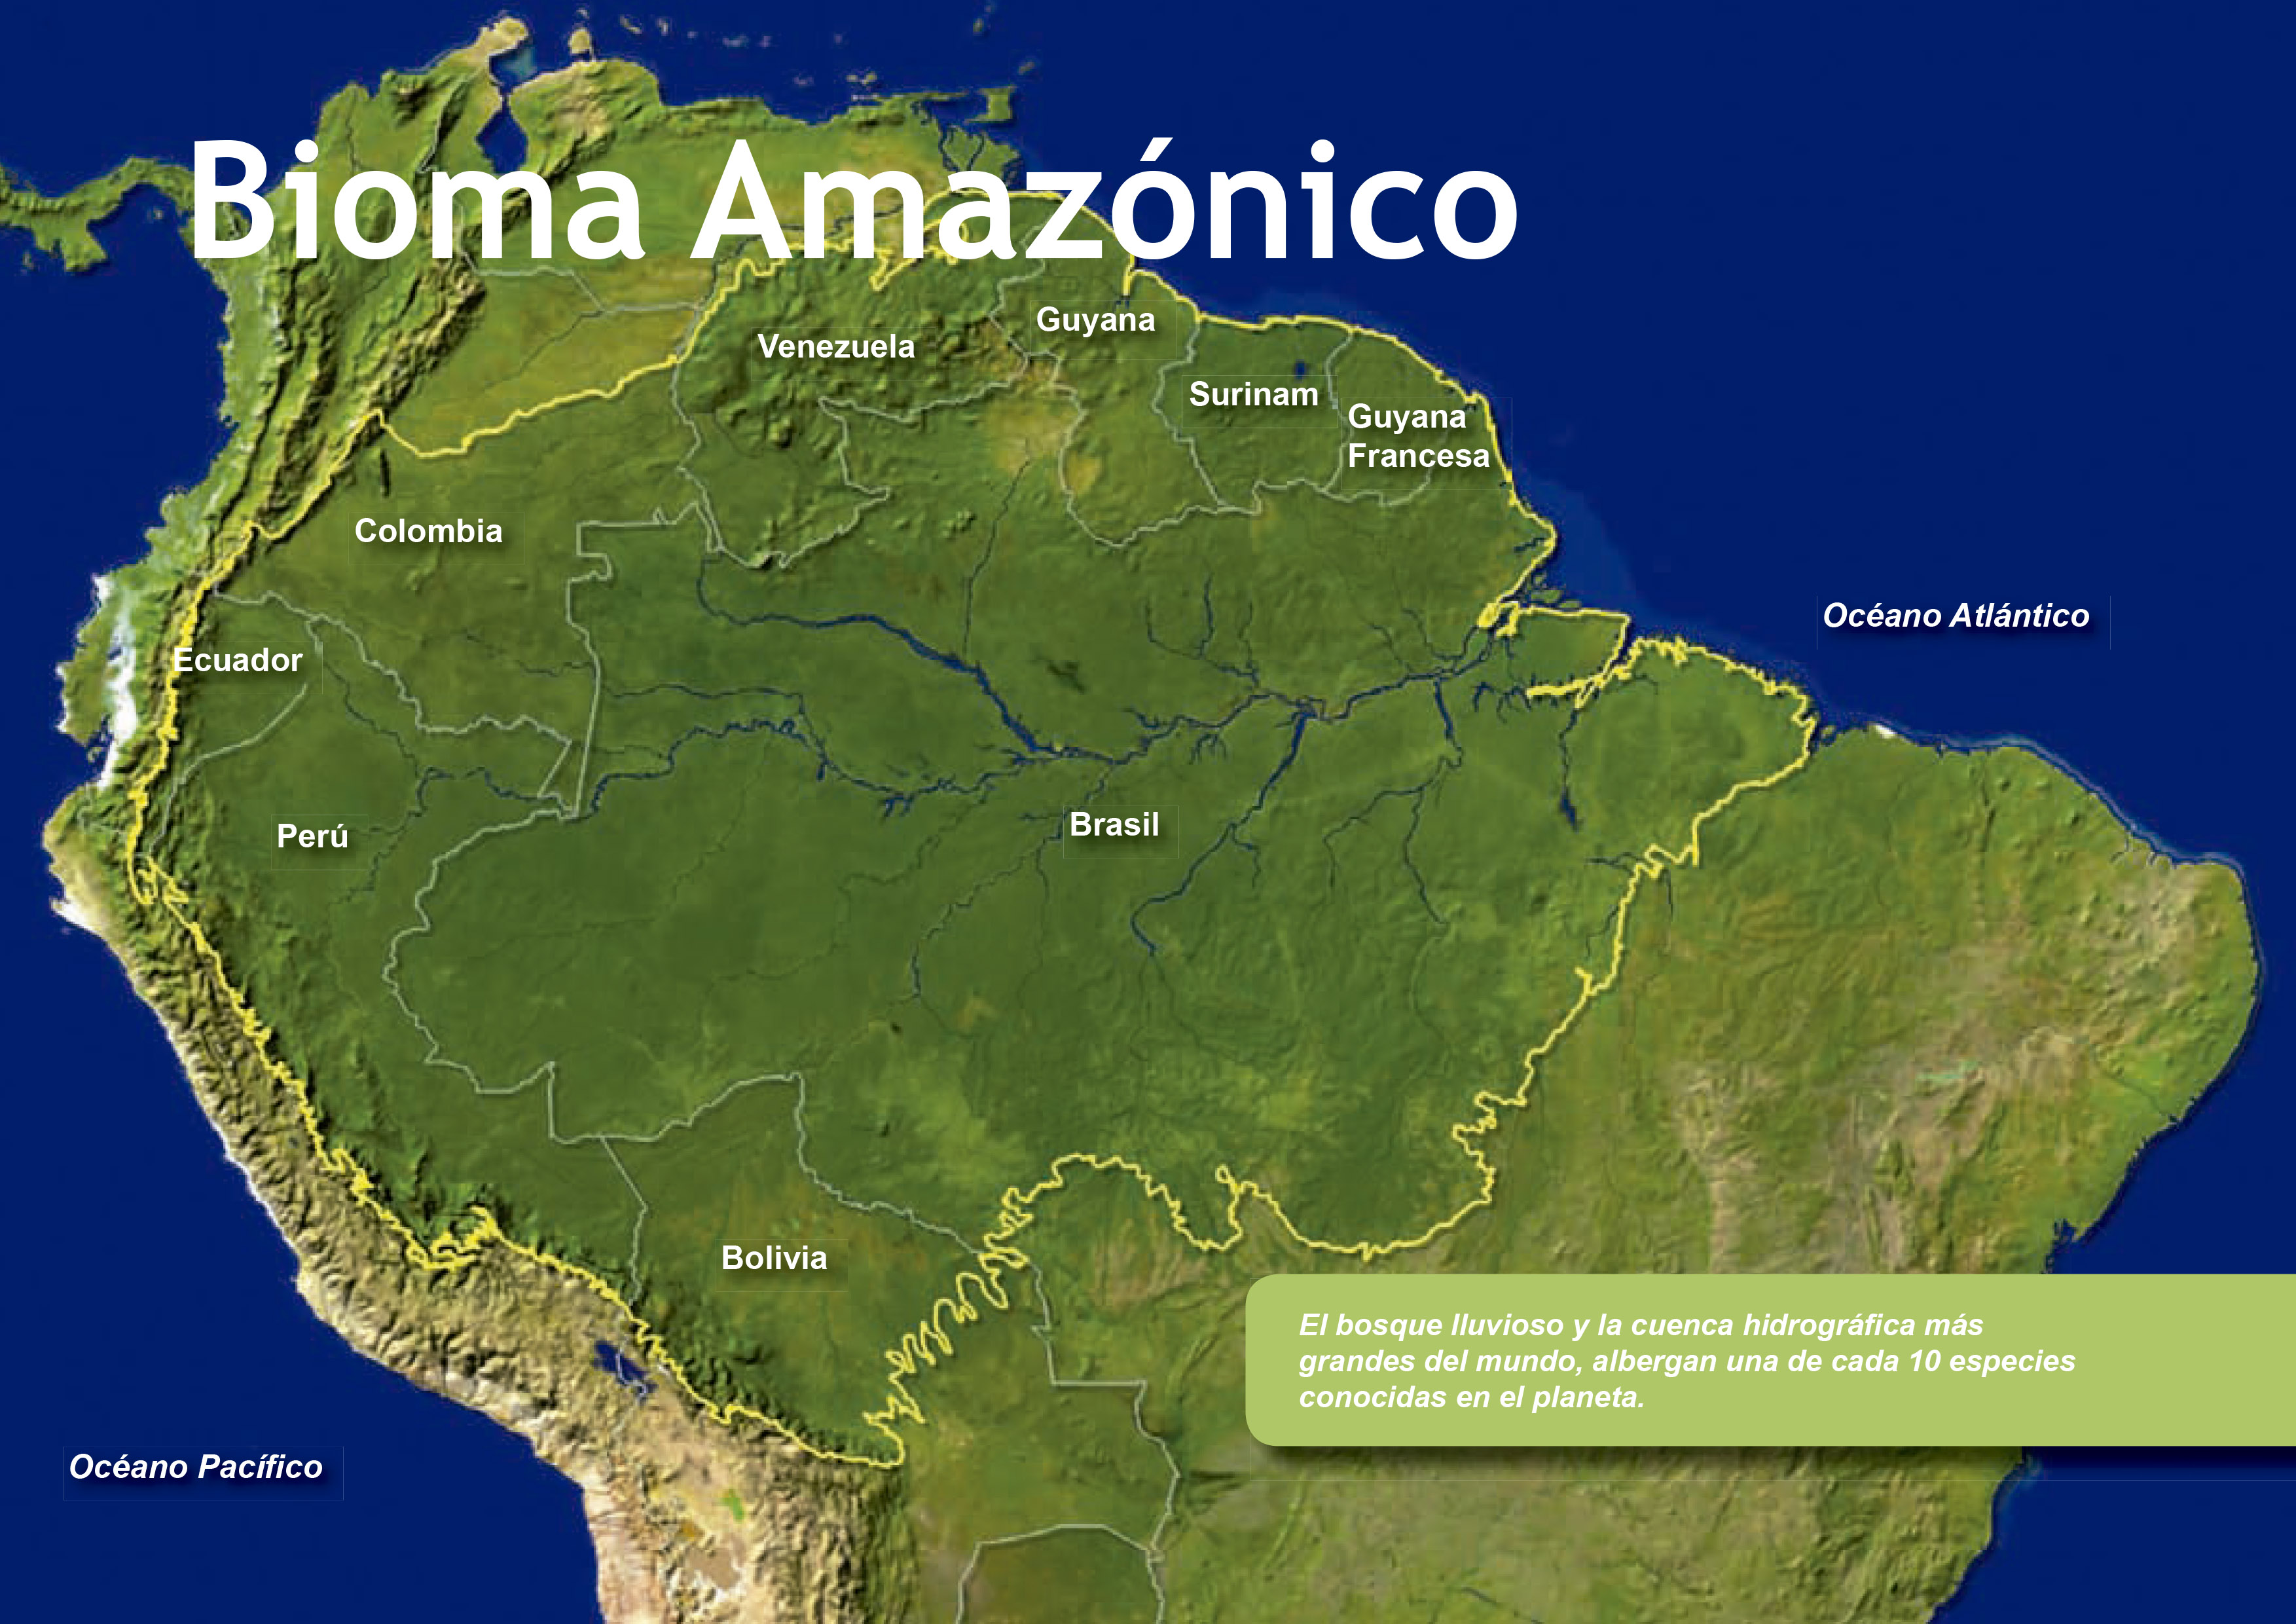 Amazon live - amazon peru - amazon nature peru - tambopata amazon - amazon wild - amazon wildlife